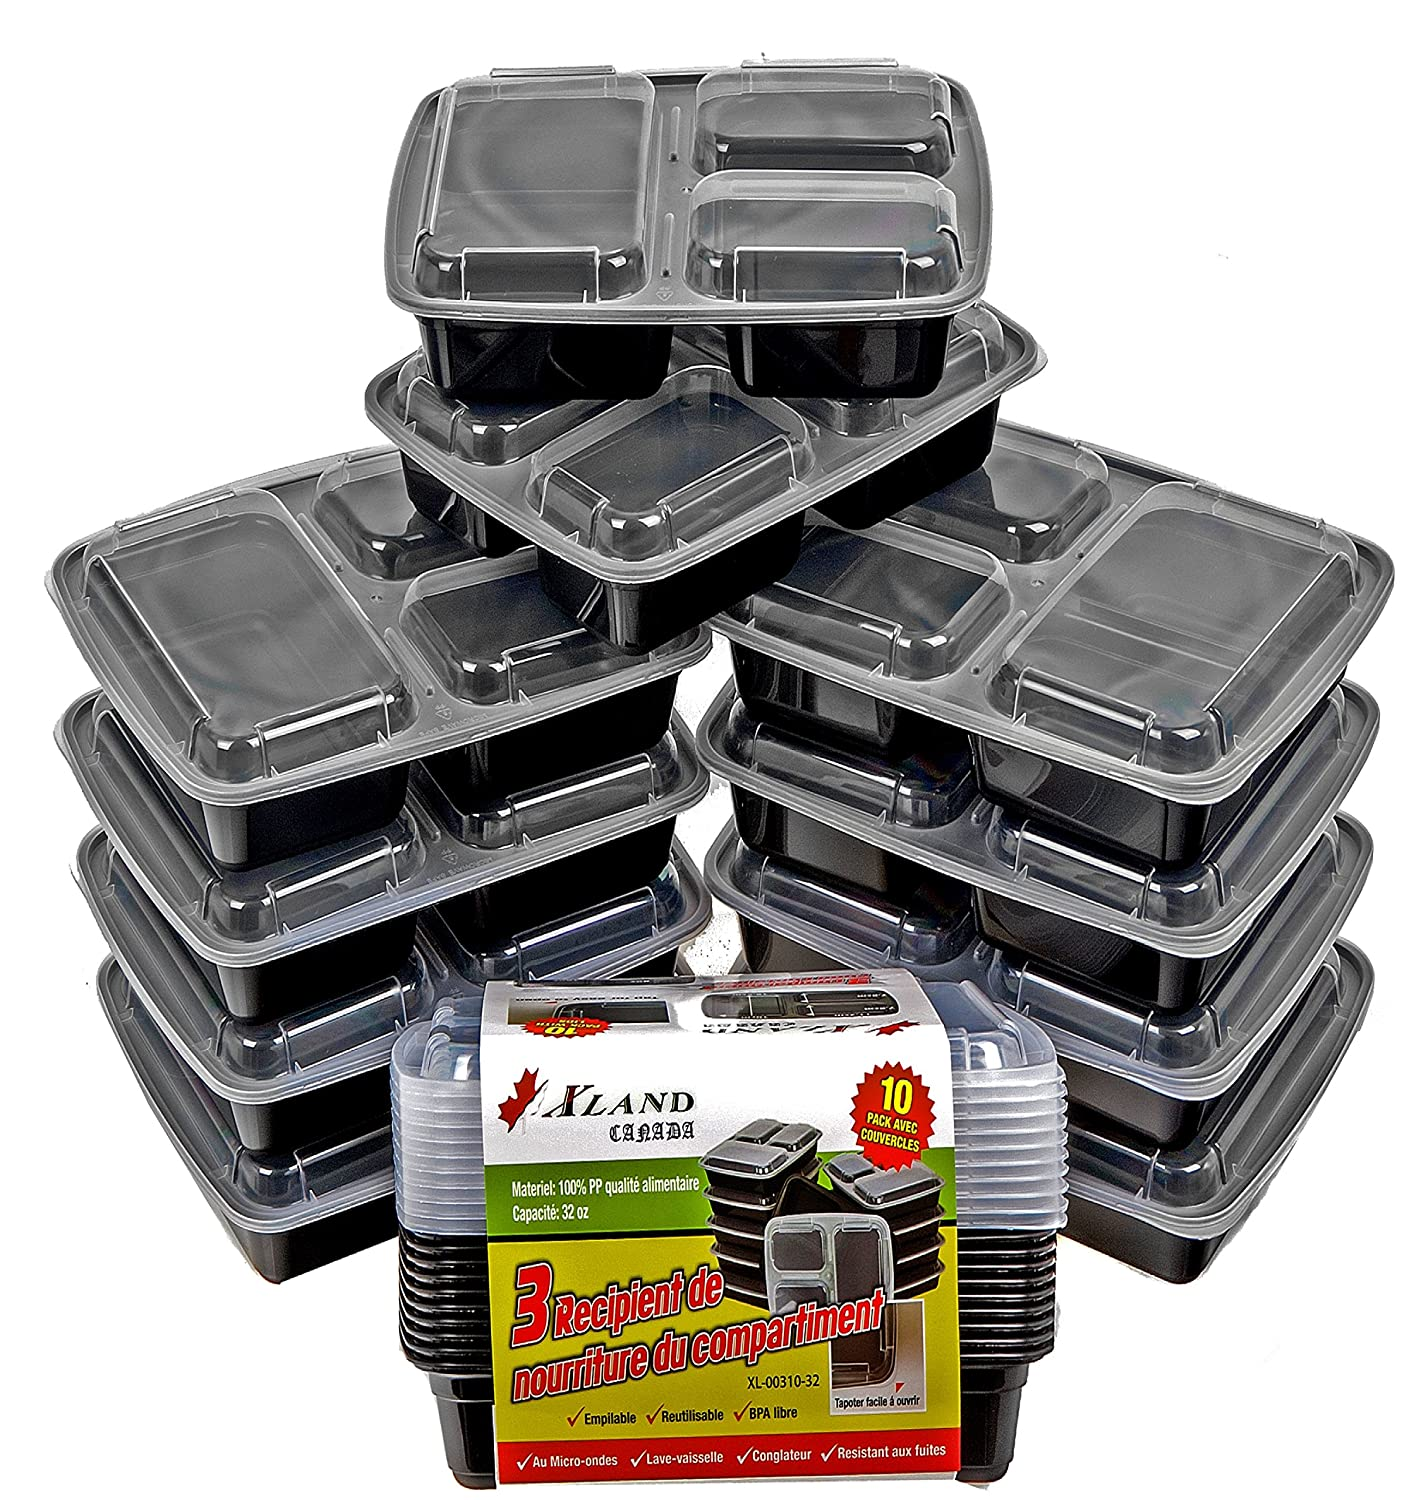 3 Compartment Bento Boxes, Meal Prep Containers, Food Storage Trays with Lids, Reusable Food Storage Containers, Microwave and Dishwasher Safe, Bento Lunch Boxes, Stackable, Compartment sizes 8, 8, and 16 ounces, with its Storage Capacity of 32 ounces Per